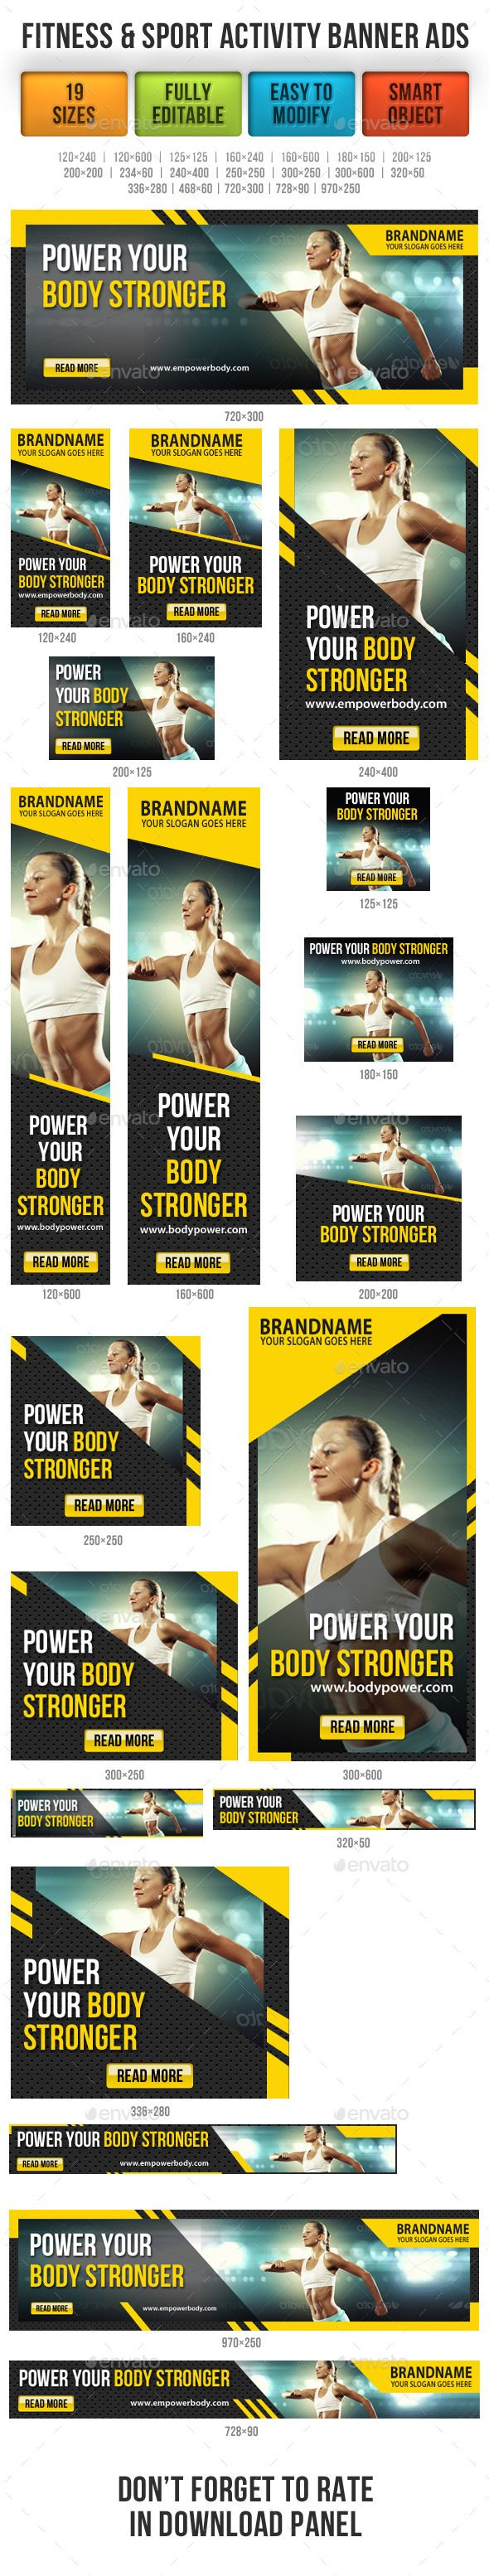 Fitness & Sport Activity Banner Ads Template PSD | Buy and Download: http://graphicriver.net/item/fitness-sport-activity-banner-ads/9120130?WT.ac=category_thumb&WT.z_author=rapidgraf&ref=ksioks